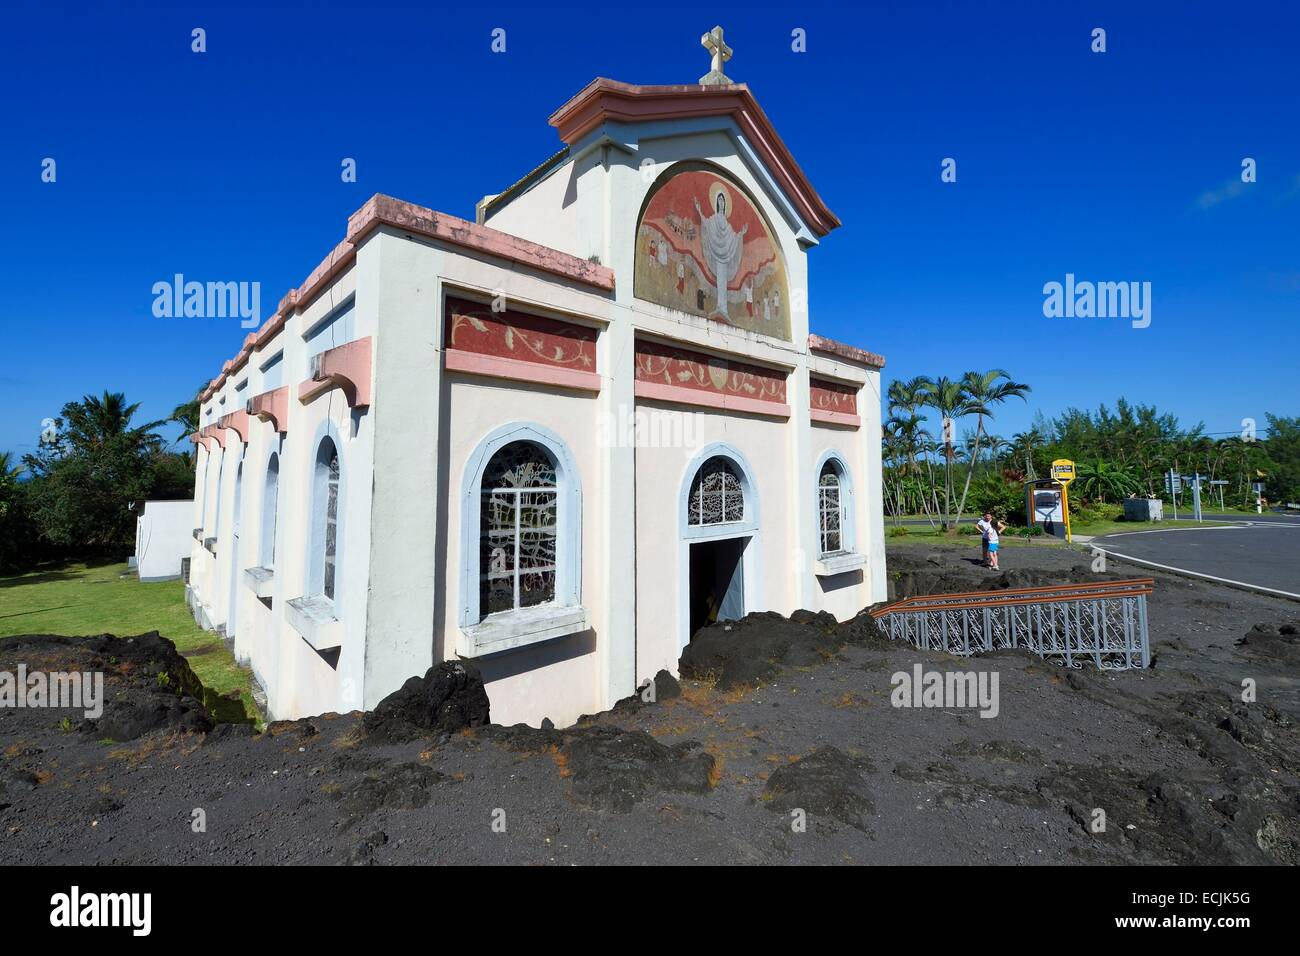 France, Reunion island (French overseas department), Piton Sainte Rose, Notre Dame des Laves church spared by the - Stock Image